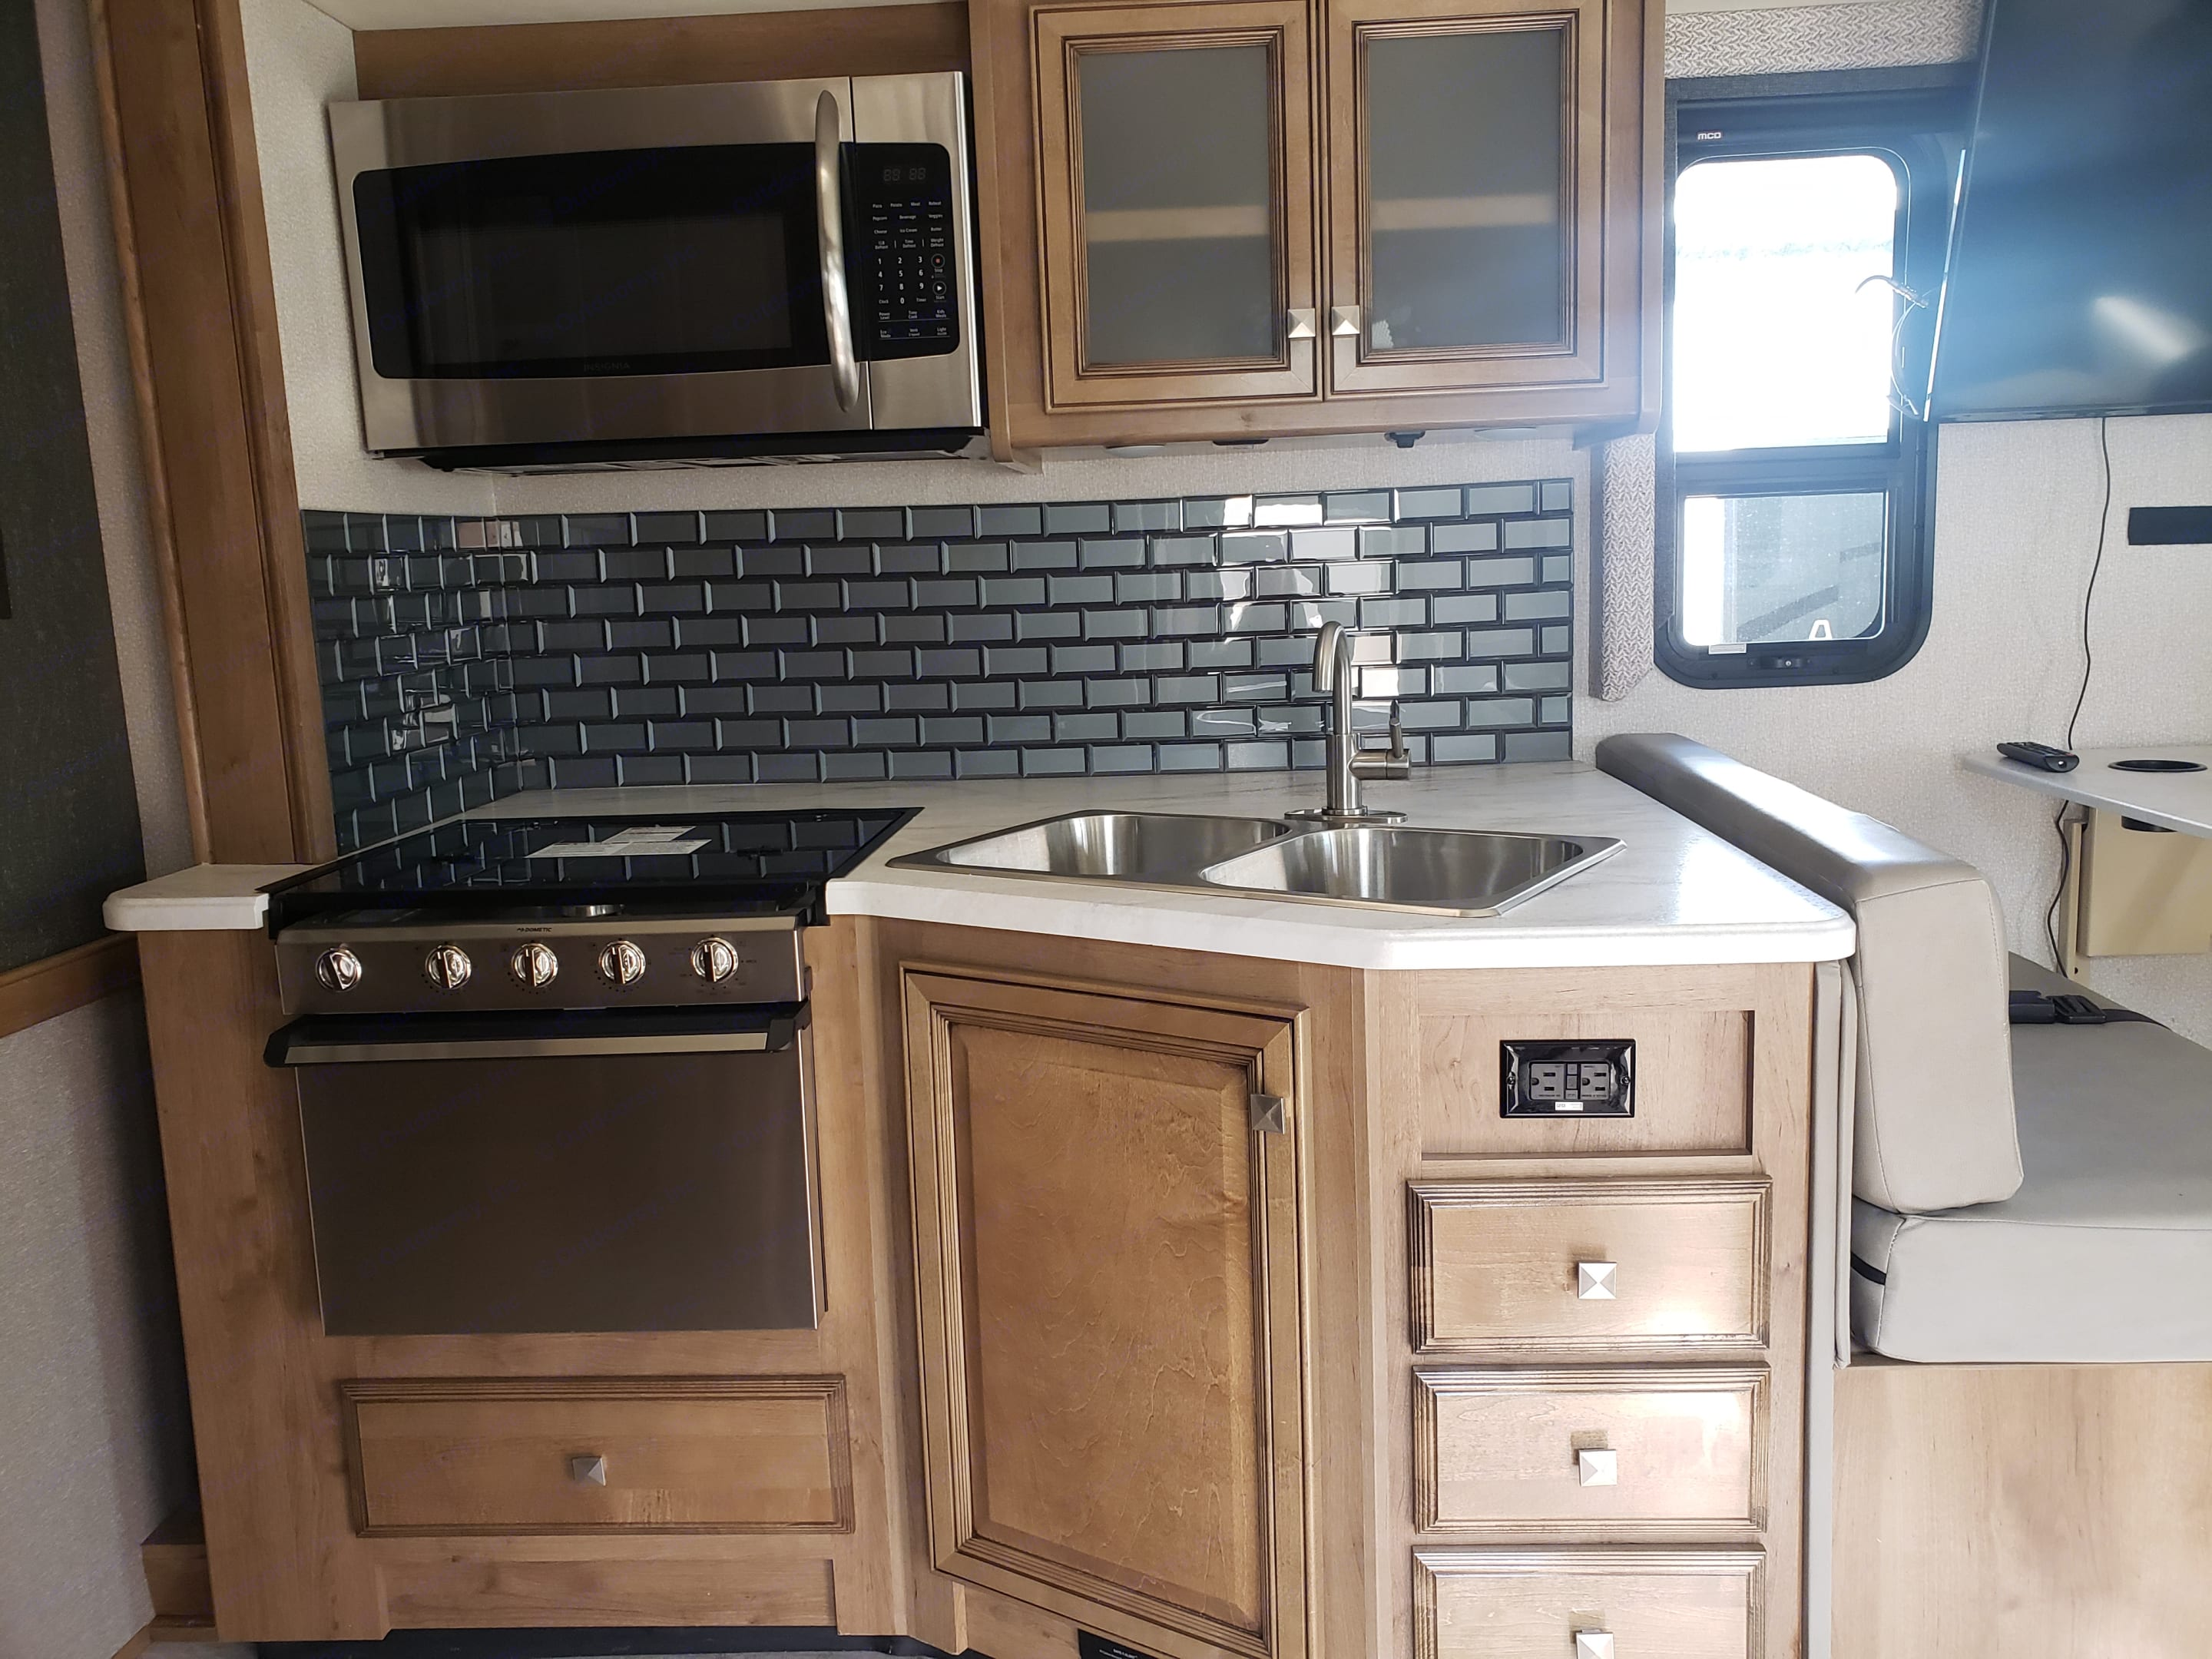 Kitchen stove microwave sink cupboards. Holiday Rambler Admiral 2021